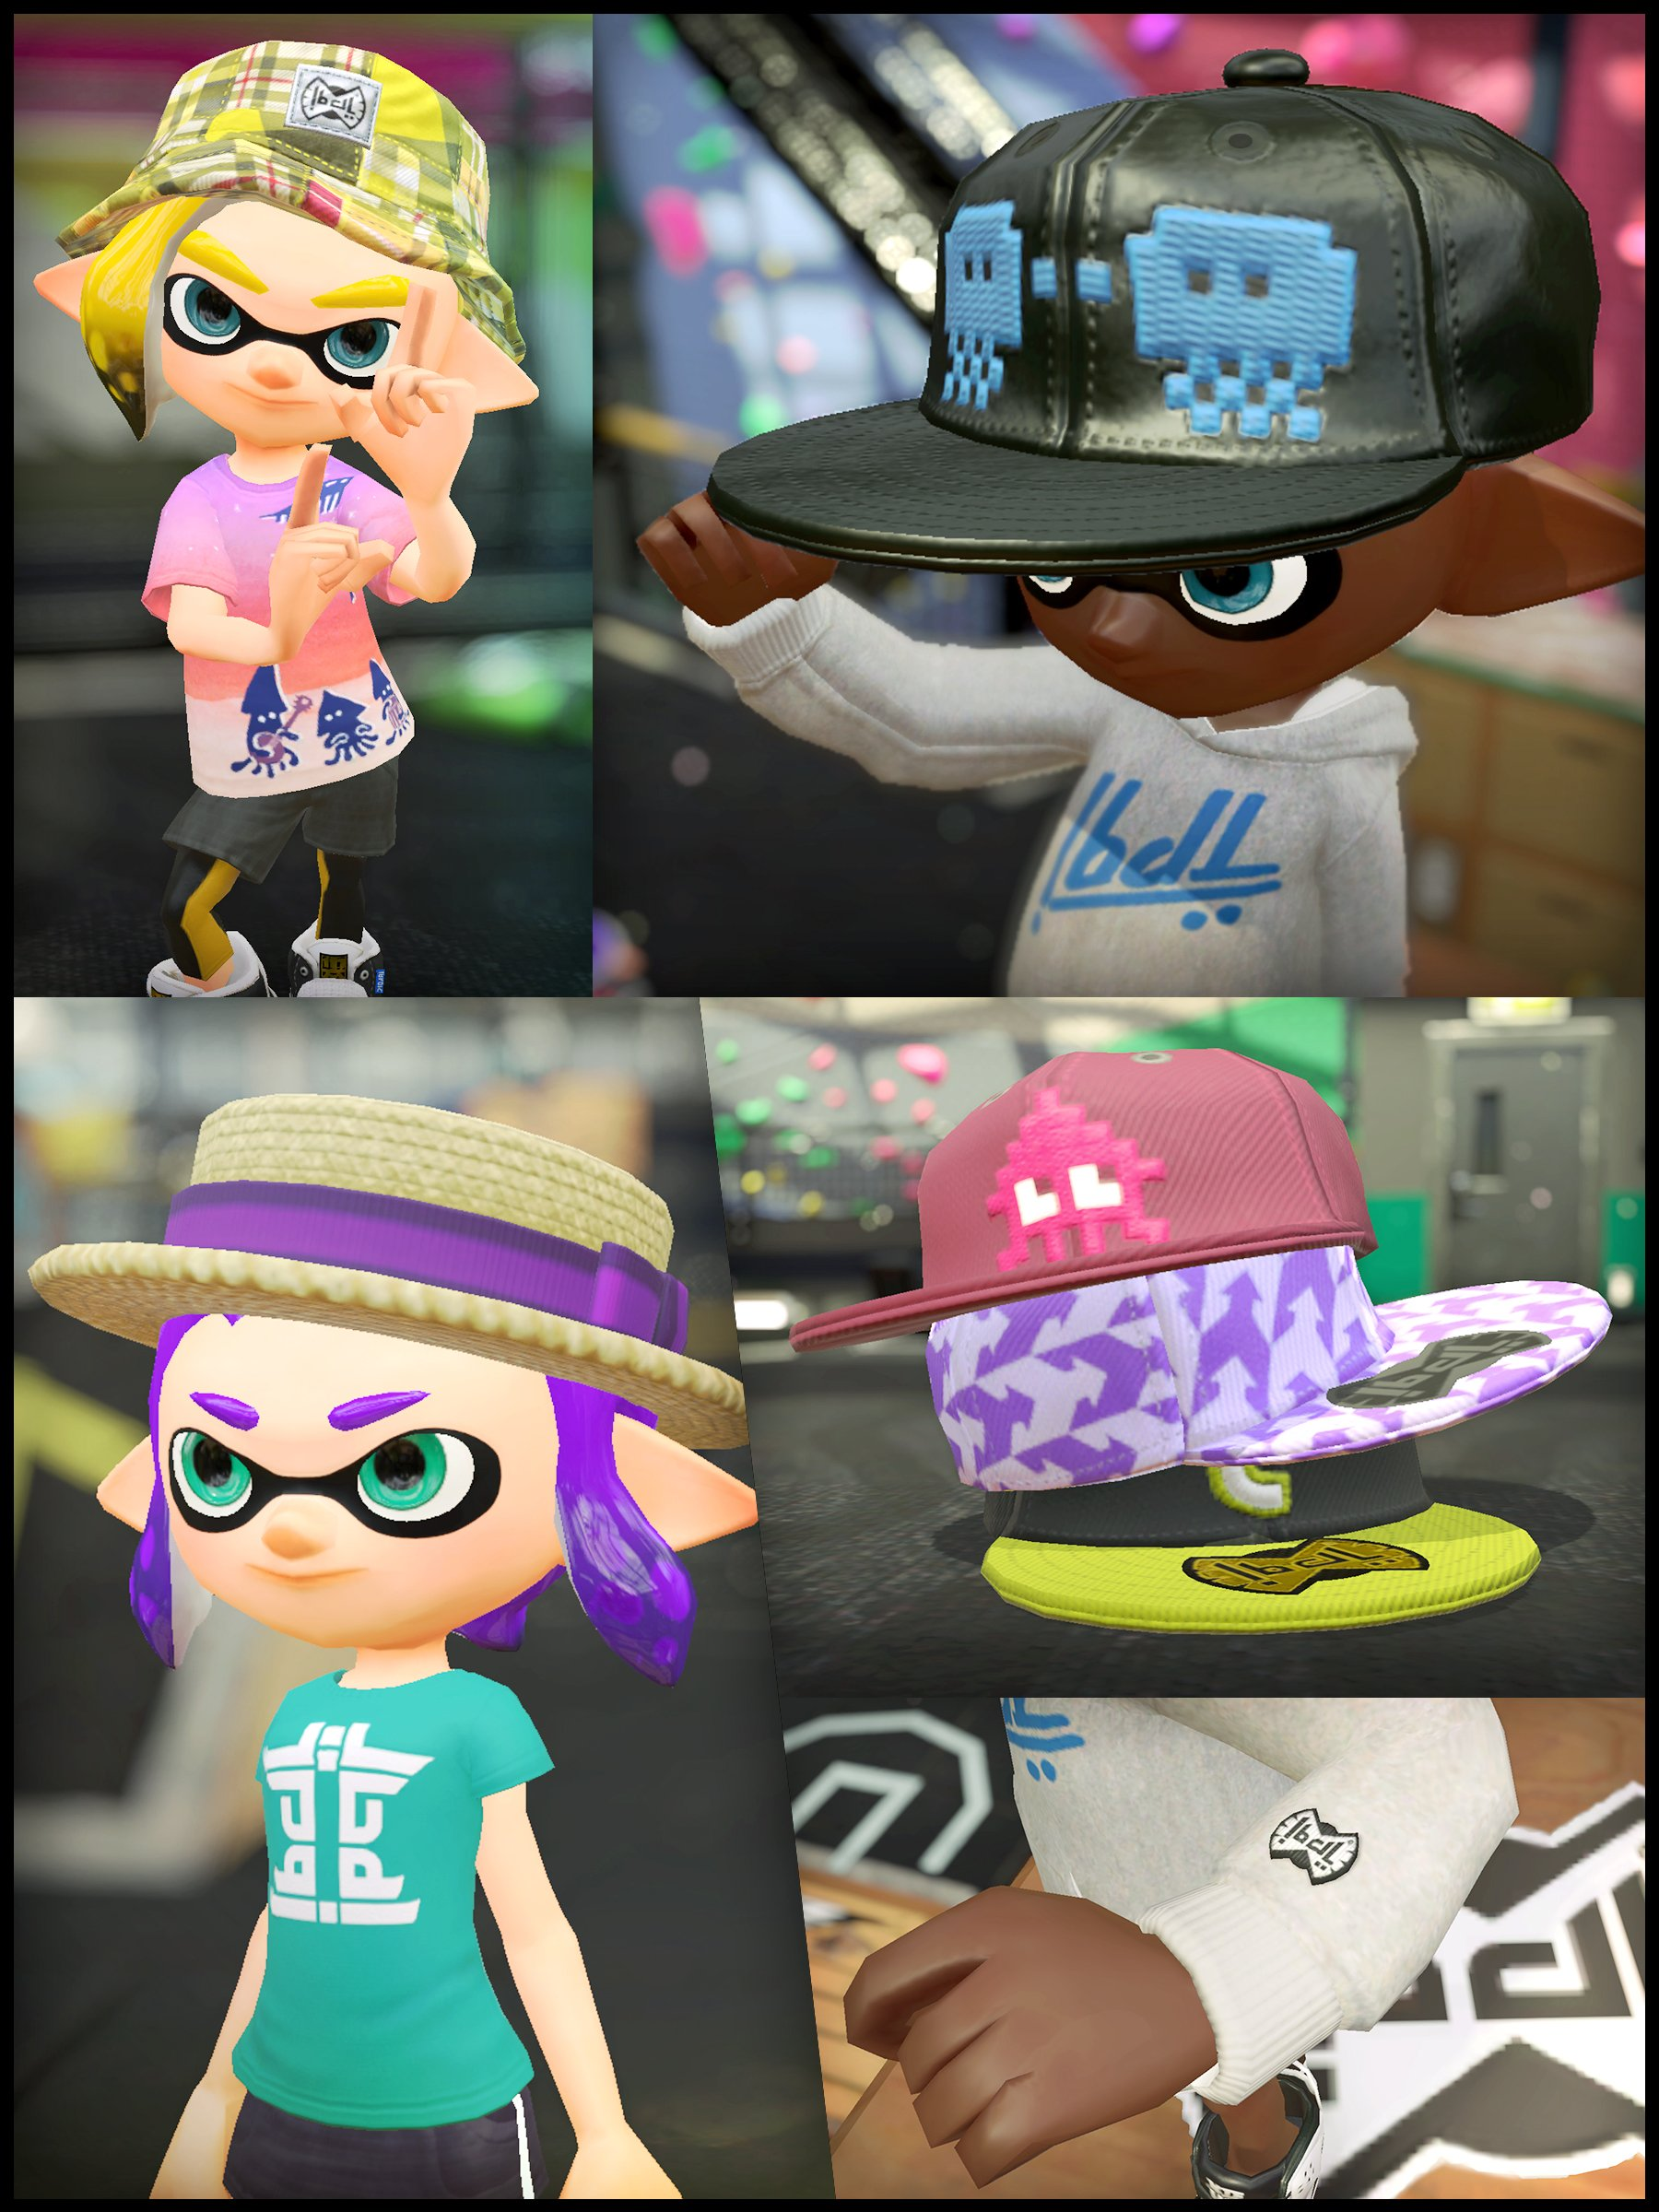 Splatoon 2 All The Details Pics GIFs And More From